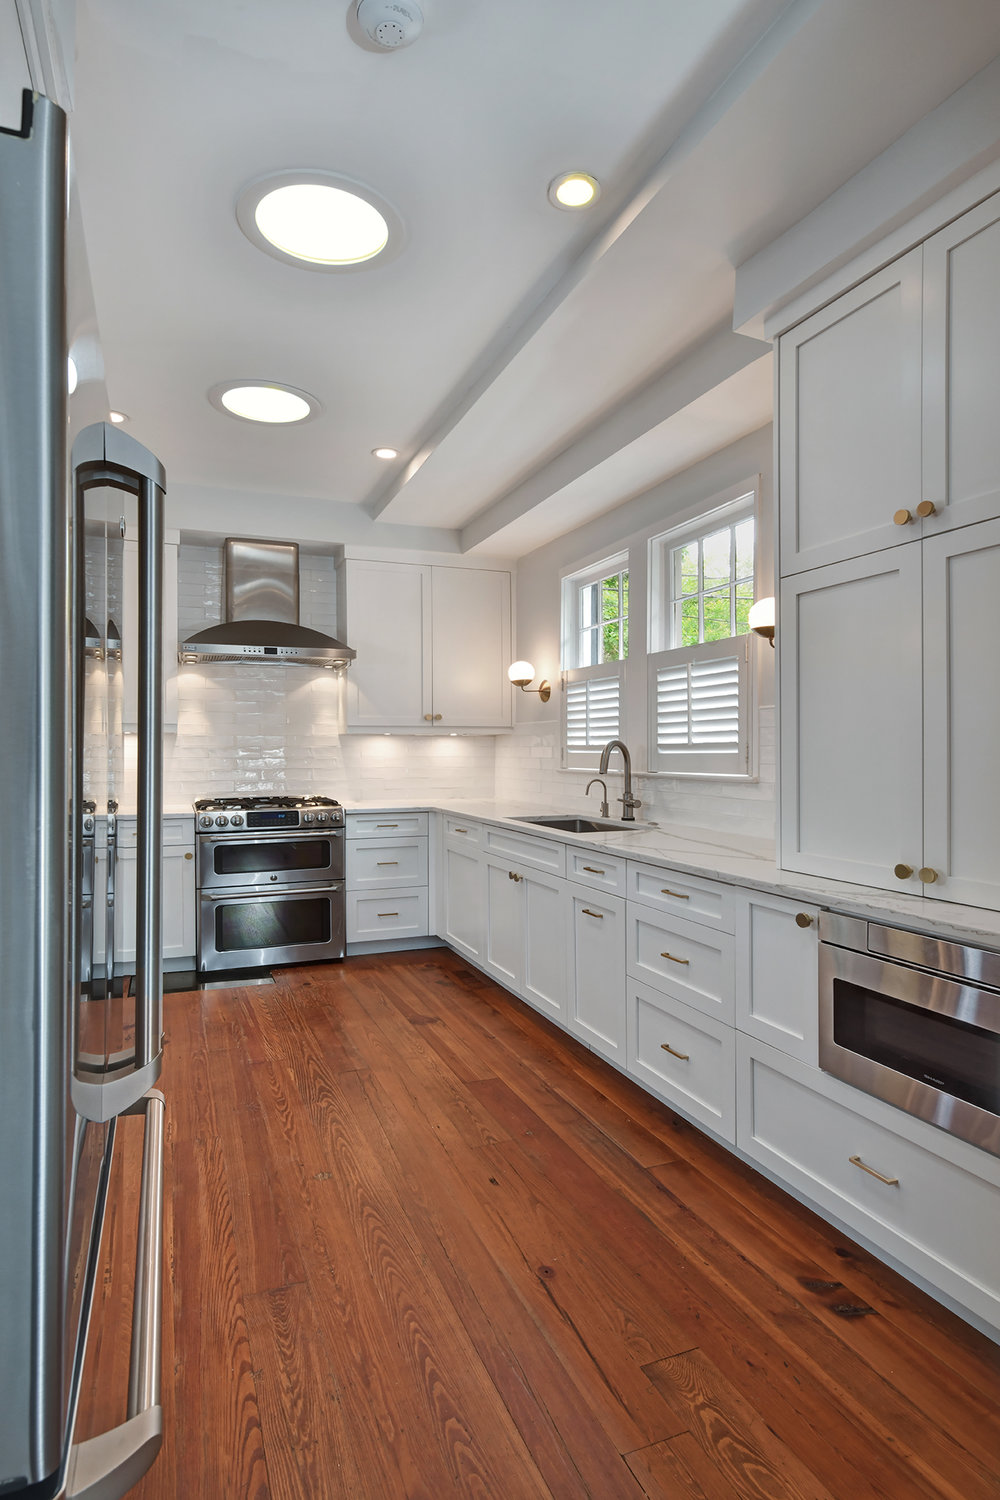 Everything has its place in this upgraded kitchen with ample storage space. Cooper-hued hardware adds a warm touch to the clean white cabinetry.